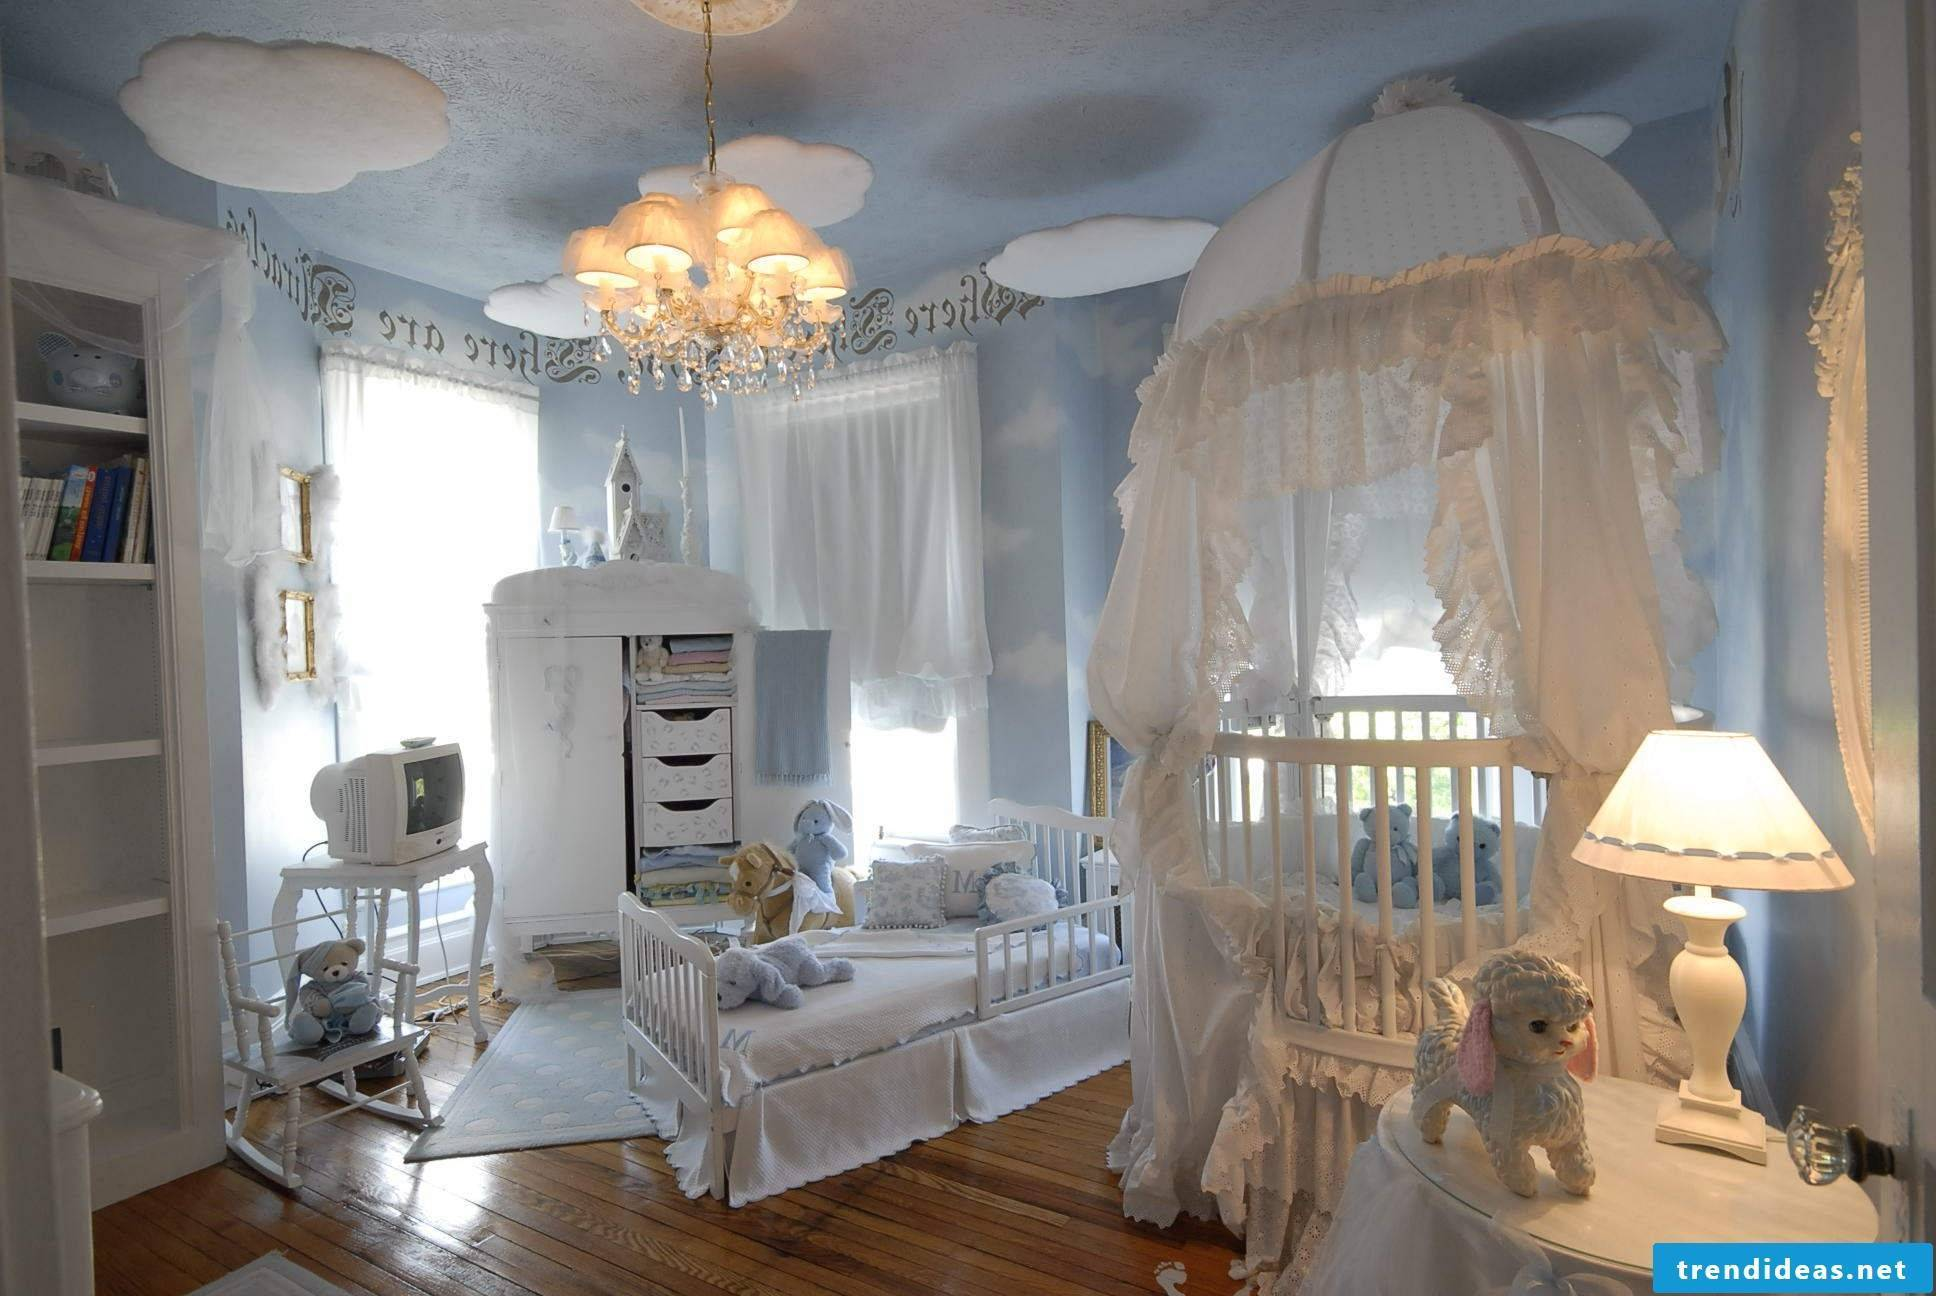 The prince's room from fairy tales